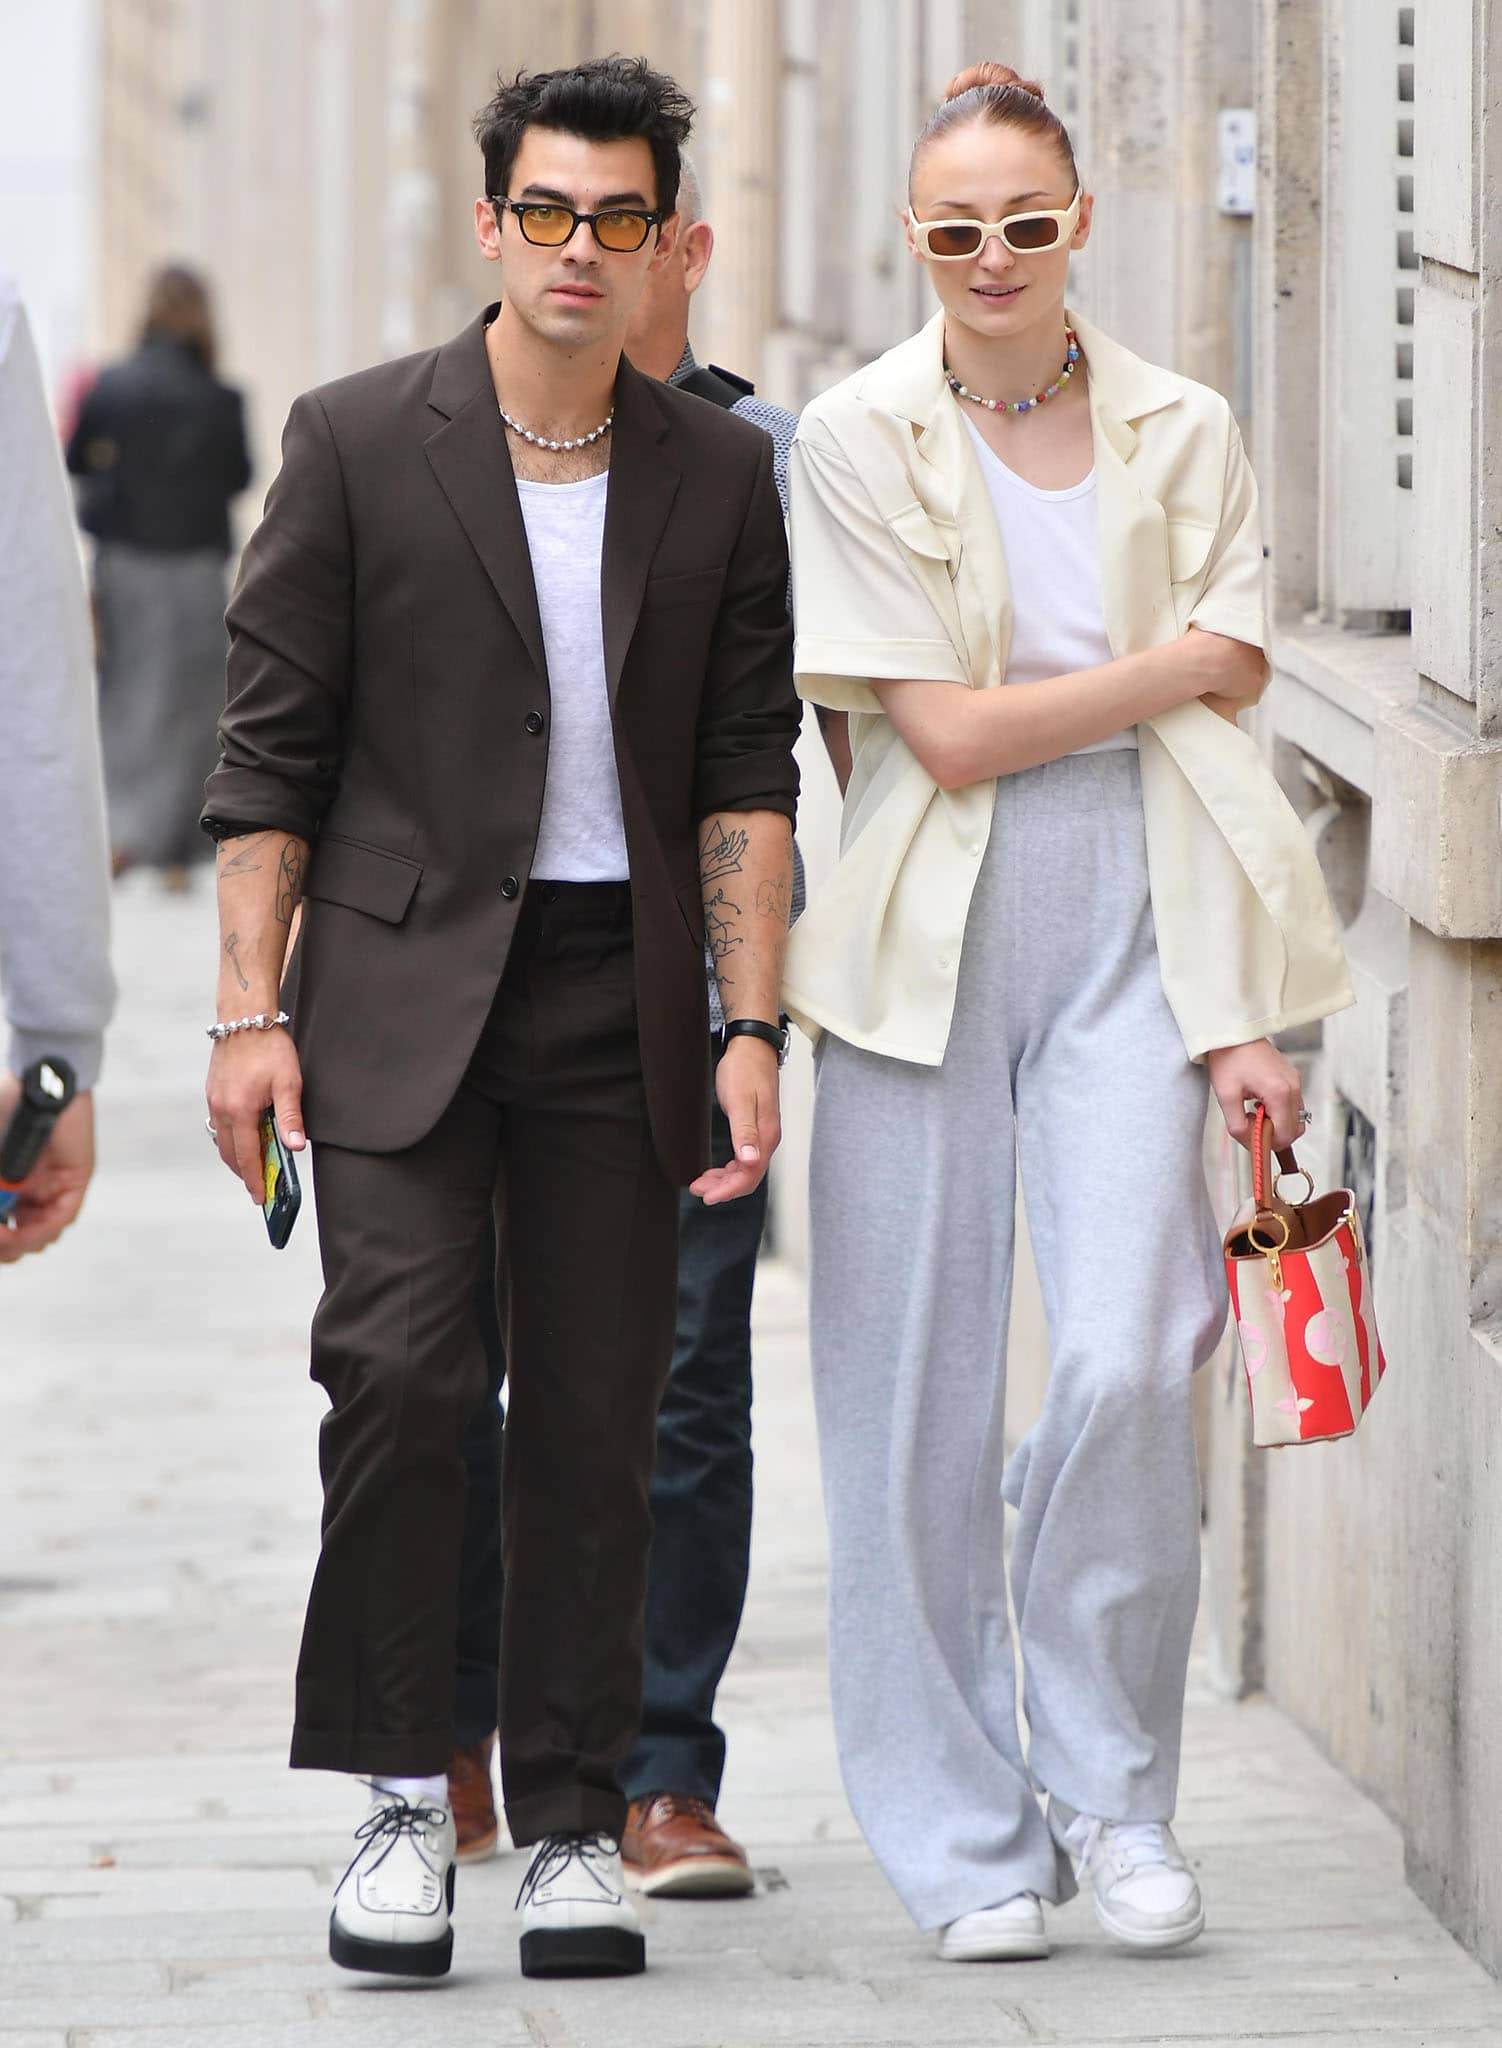 Joe Jonas looks handsome in his brown pantsuit with a white tee, brogues, and yellow-tinted sunglasses